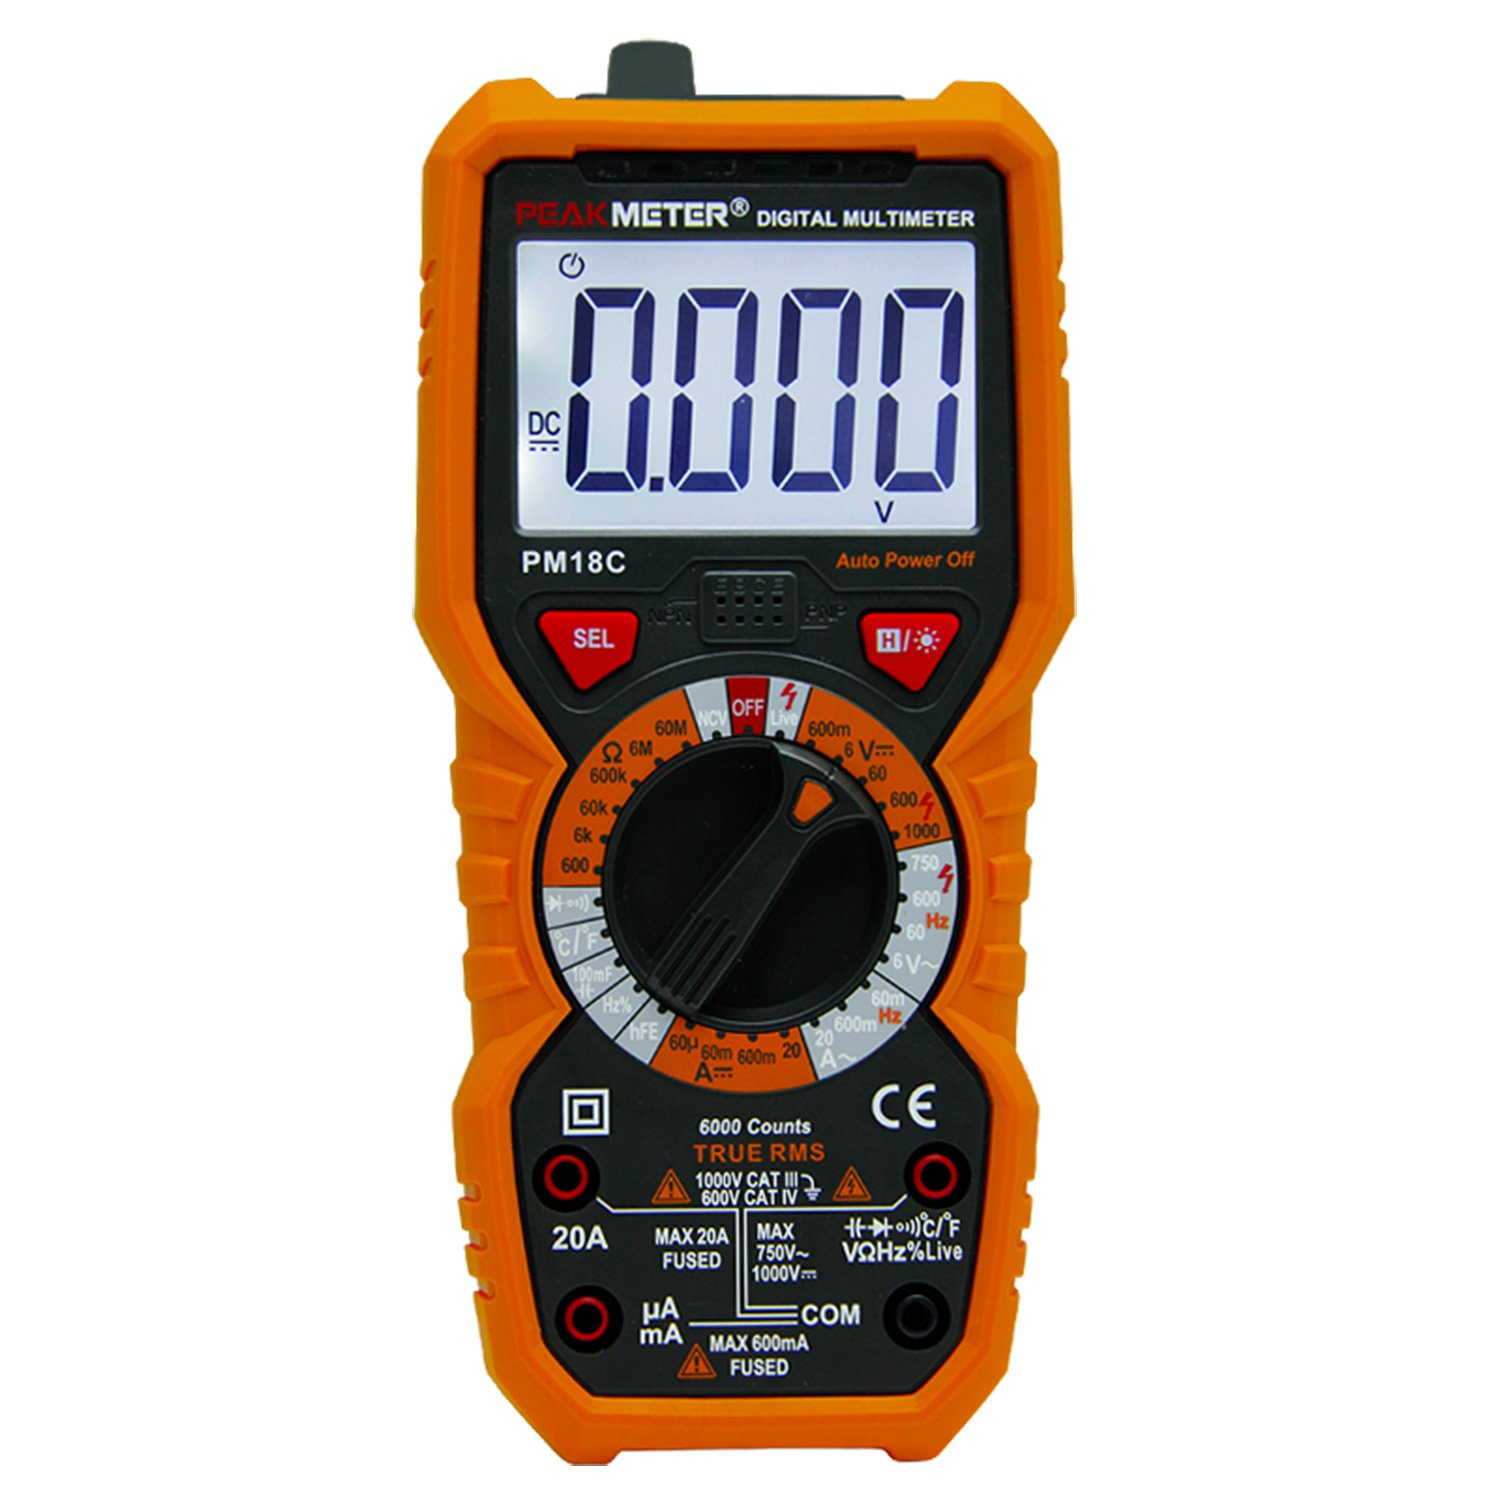 PEAKMETER PM18C Digital Multimeter DC AC Multimeter Voltage Current Tester Manual Range Backlight with 6000 Counts Orange Cover by PEAKMETER